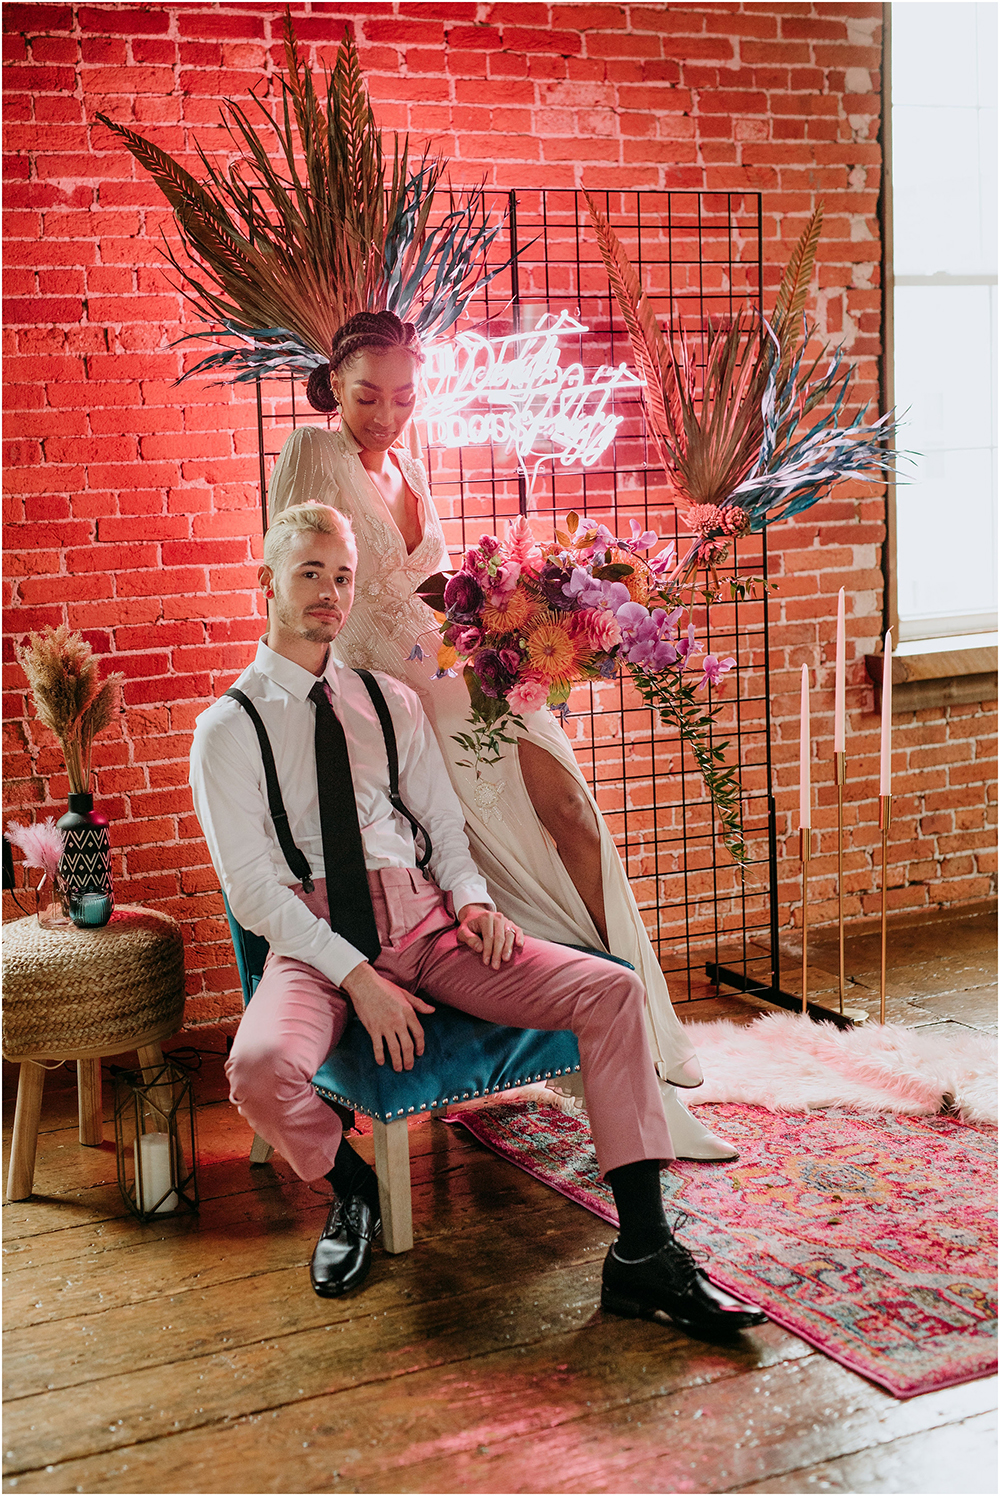 This absolutely jaw dropping wedding shoot was done in an industrial loft and was rcokign all things badass and neon pink